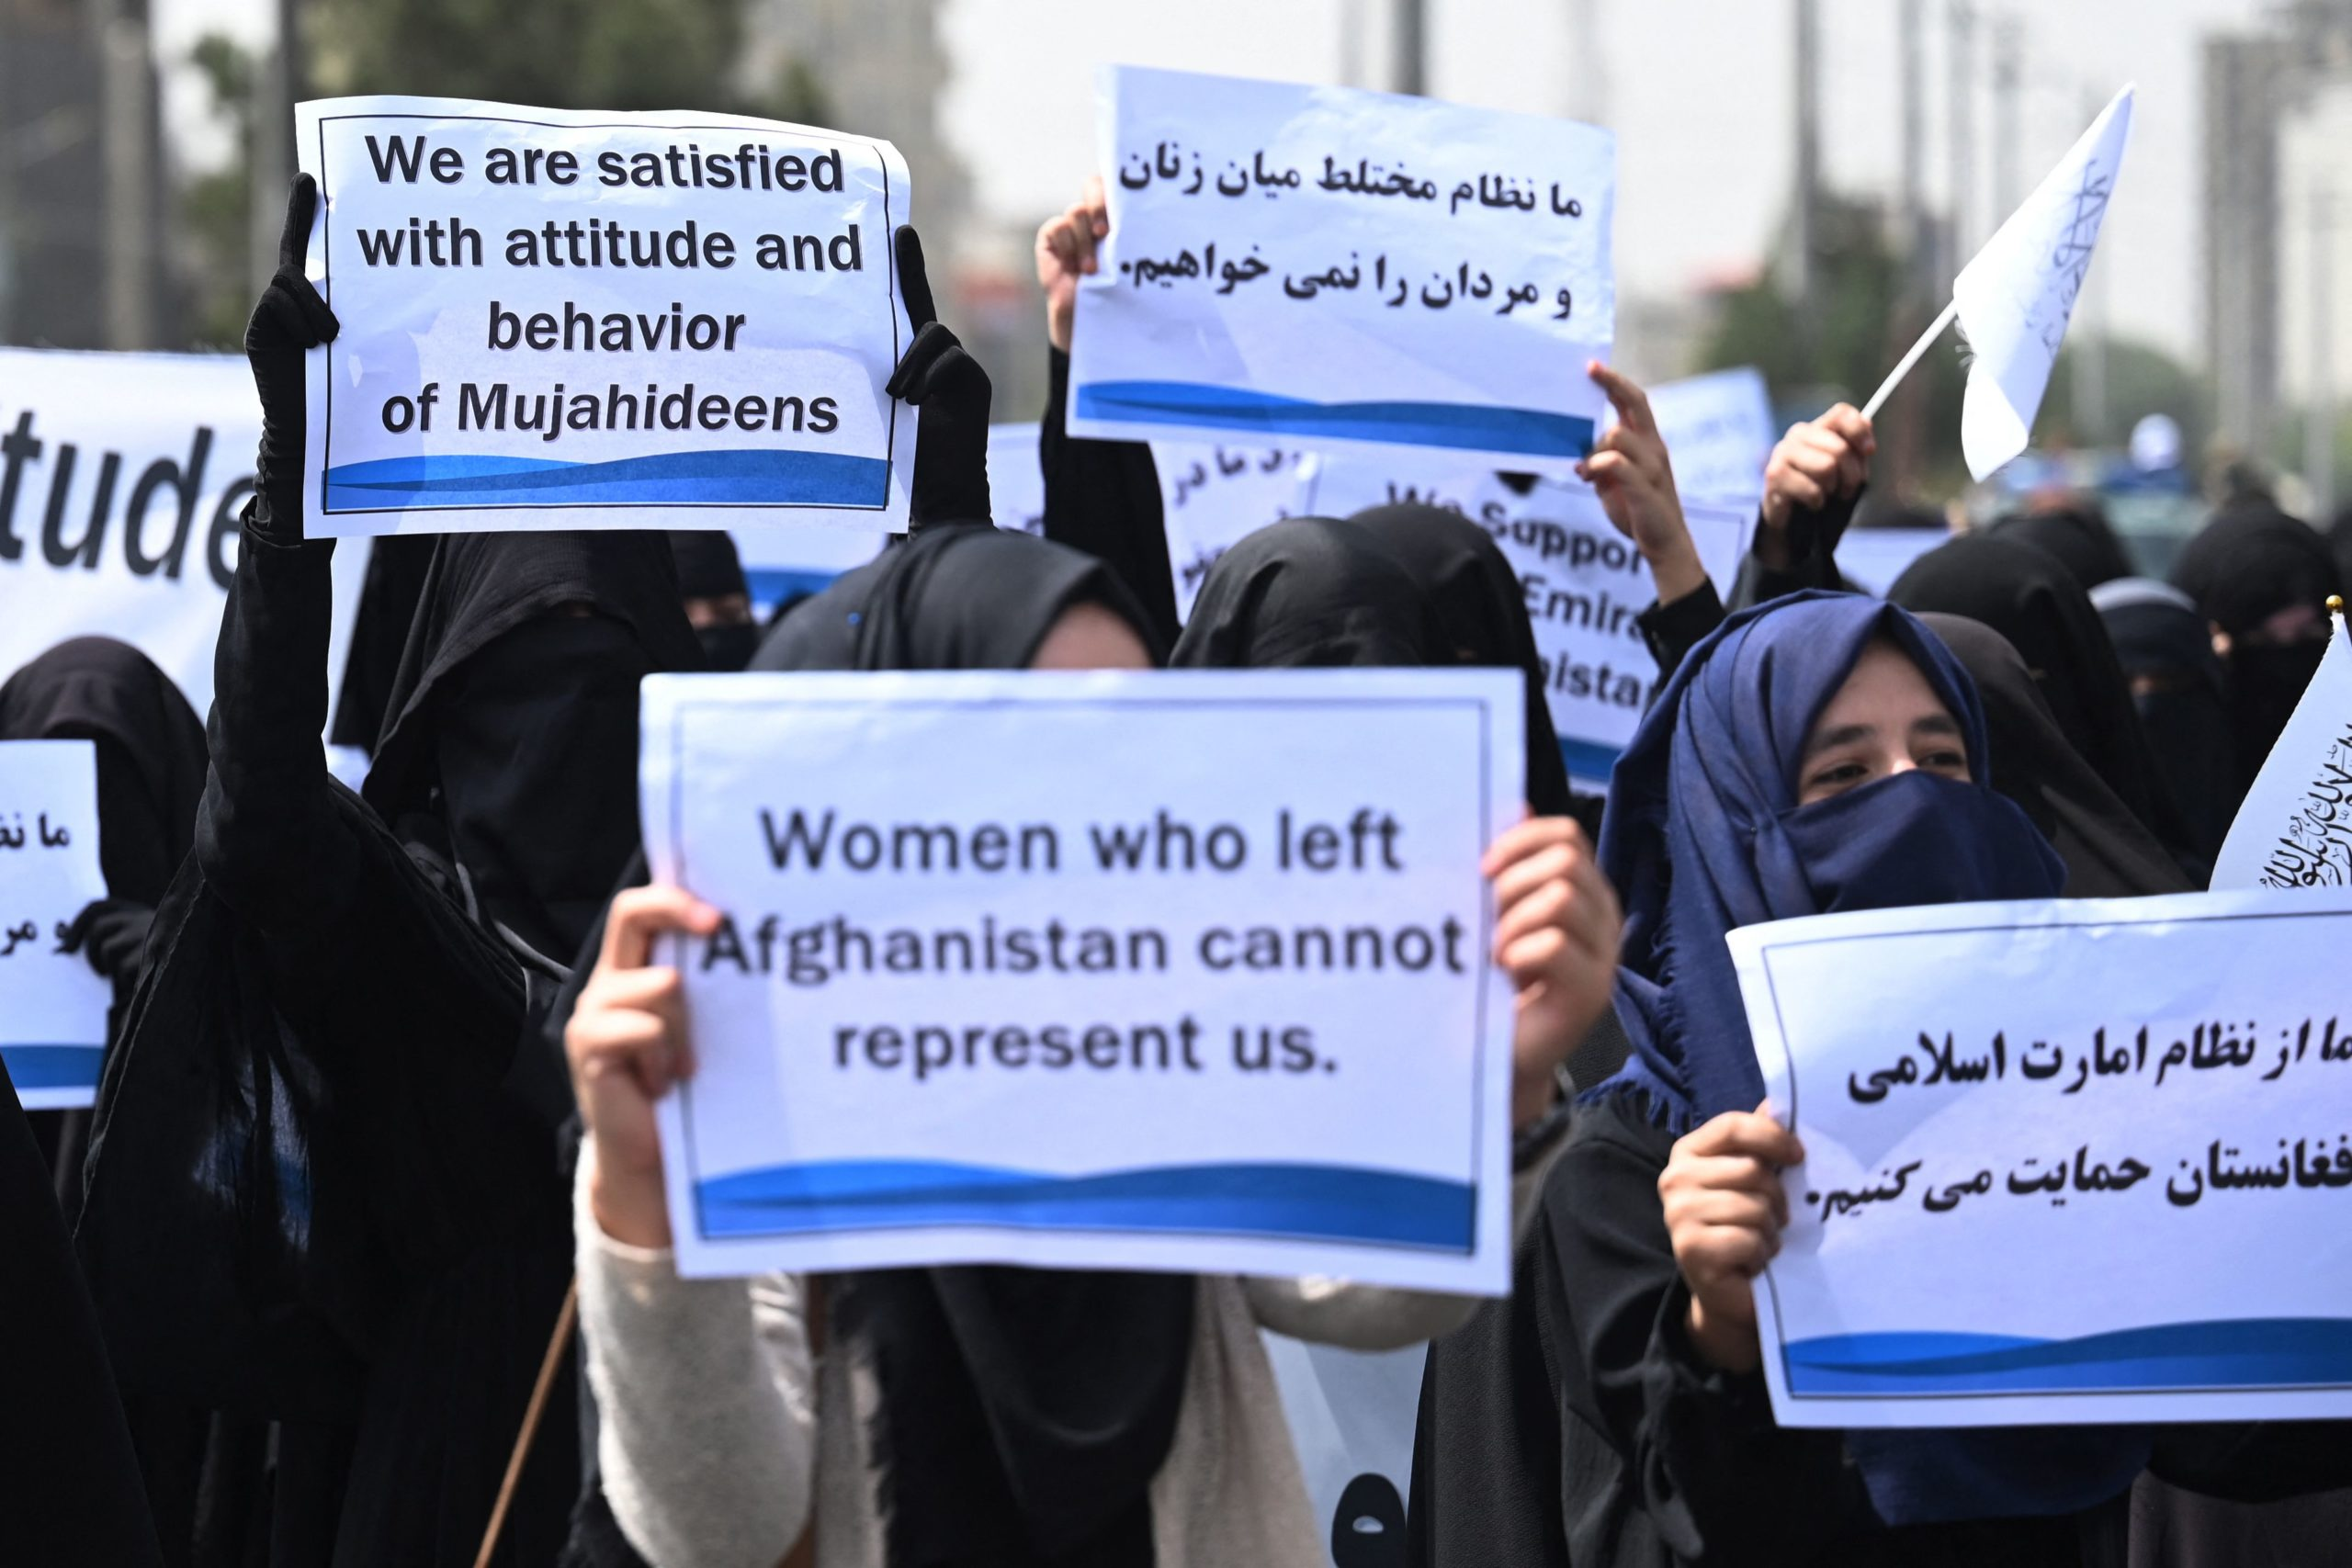 Veiled women hold banners and placards while marching during a pro-Taliban rally outside the Shaheed Rabbani Education University in Kabul on September 11, 2021. (Photo by AAMIR QURESHI/AFP via Getty Images)